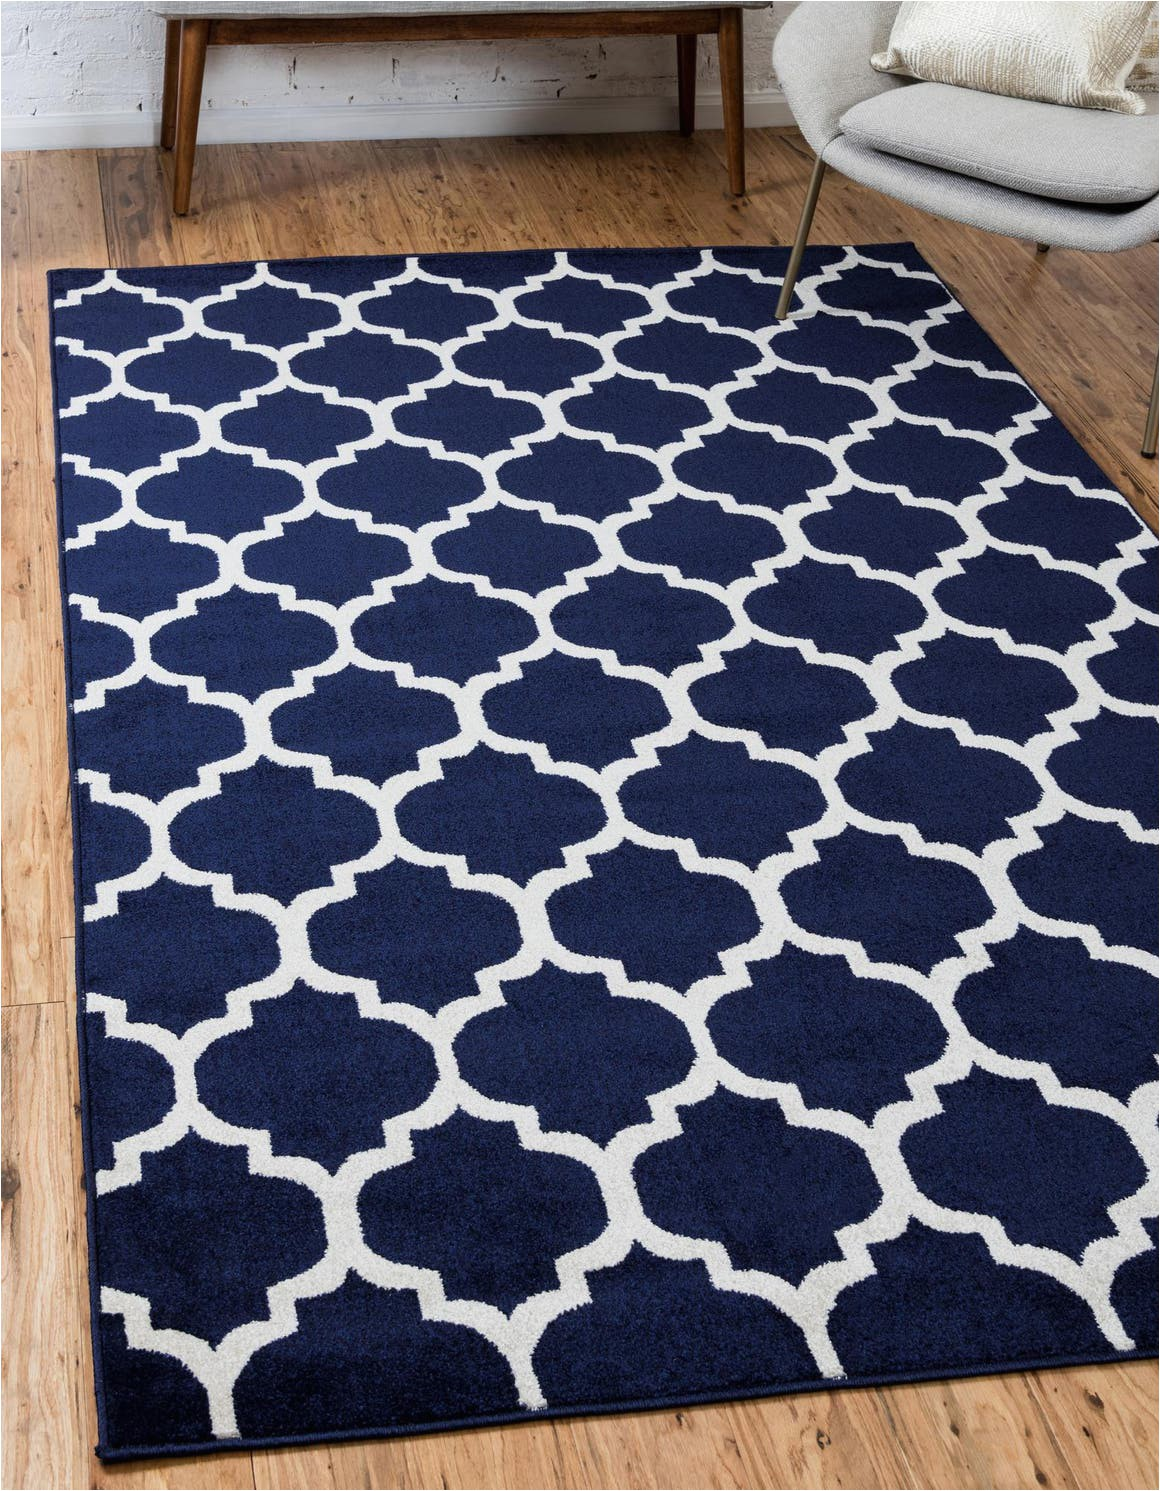 navy blue 12x16 trellis area rug